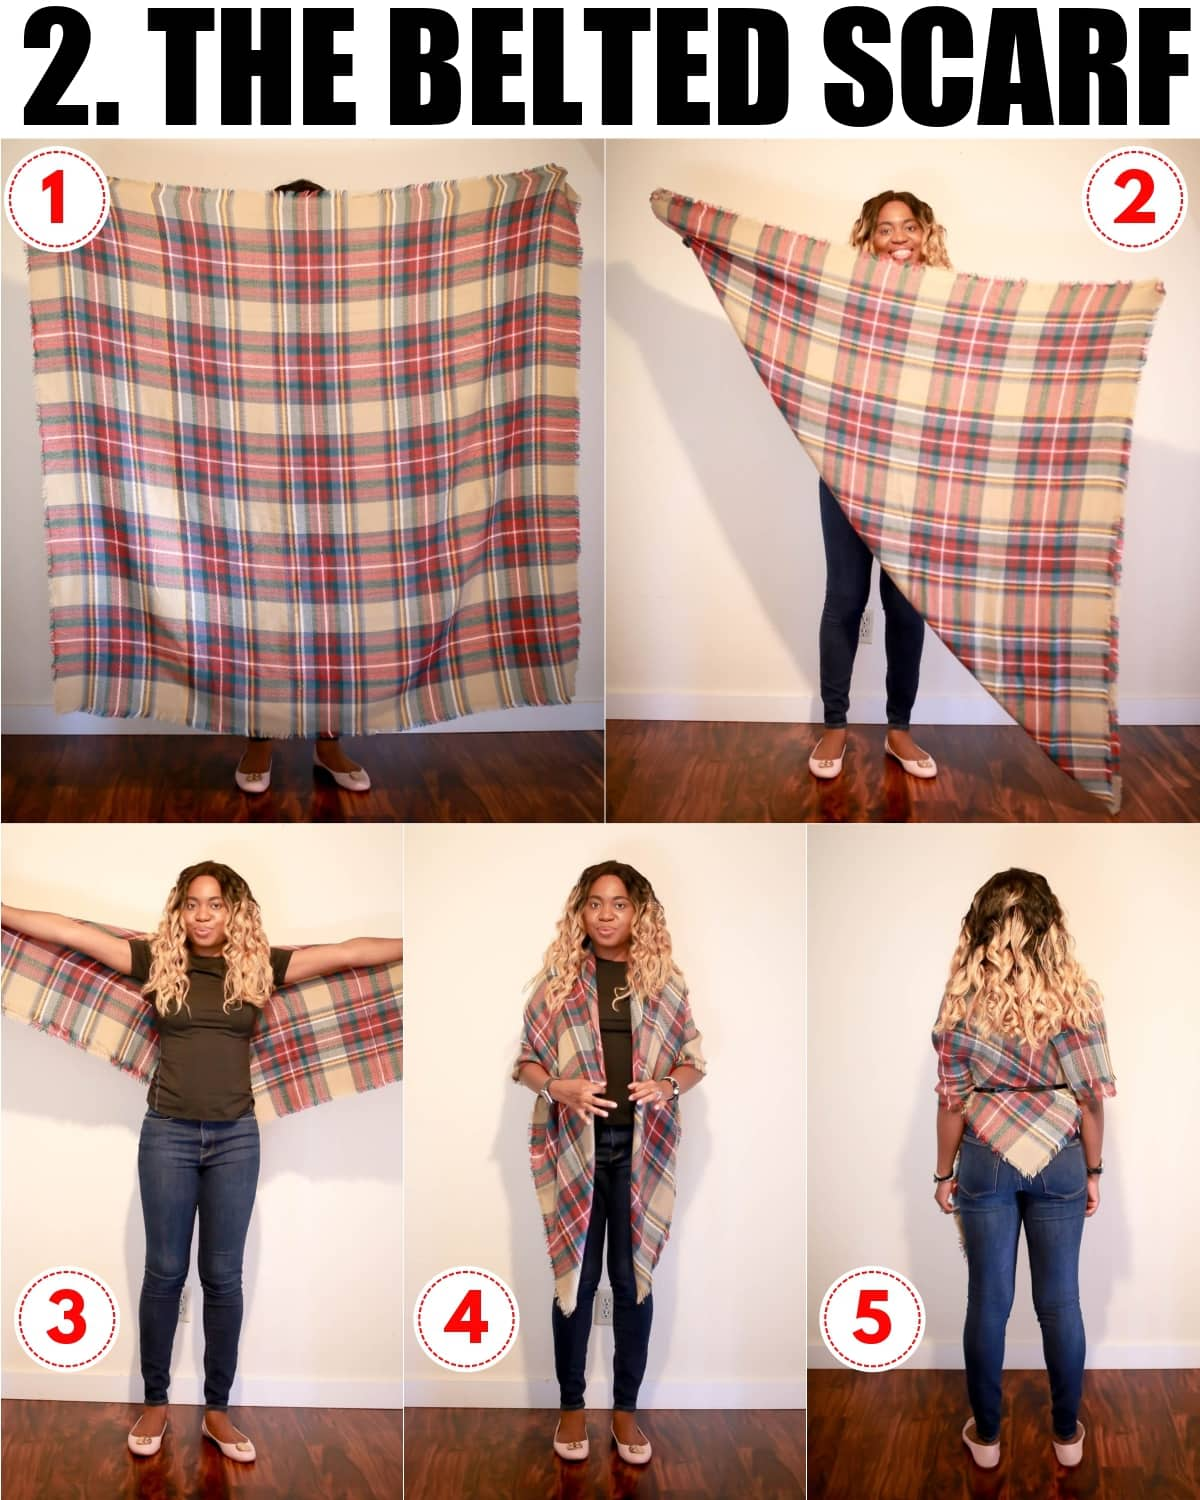 The one trend that I take advantage of every year is the blanket scarf look. Why? Blanket scarves are functional and fashionable even in Alaska! But in truth, learning how to tie a blanket scarf felt like a nightmare. Here are the easiest ways to nail this trend every time.